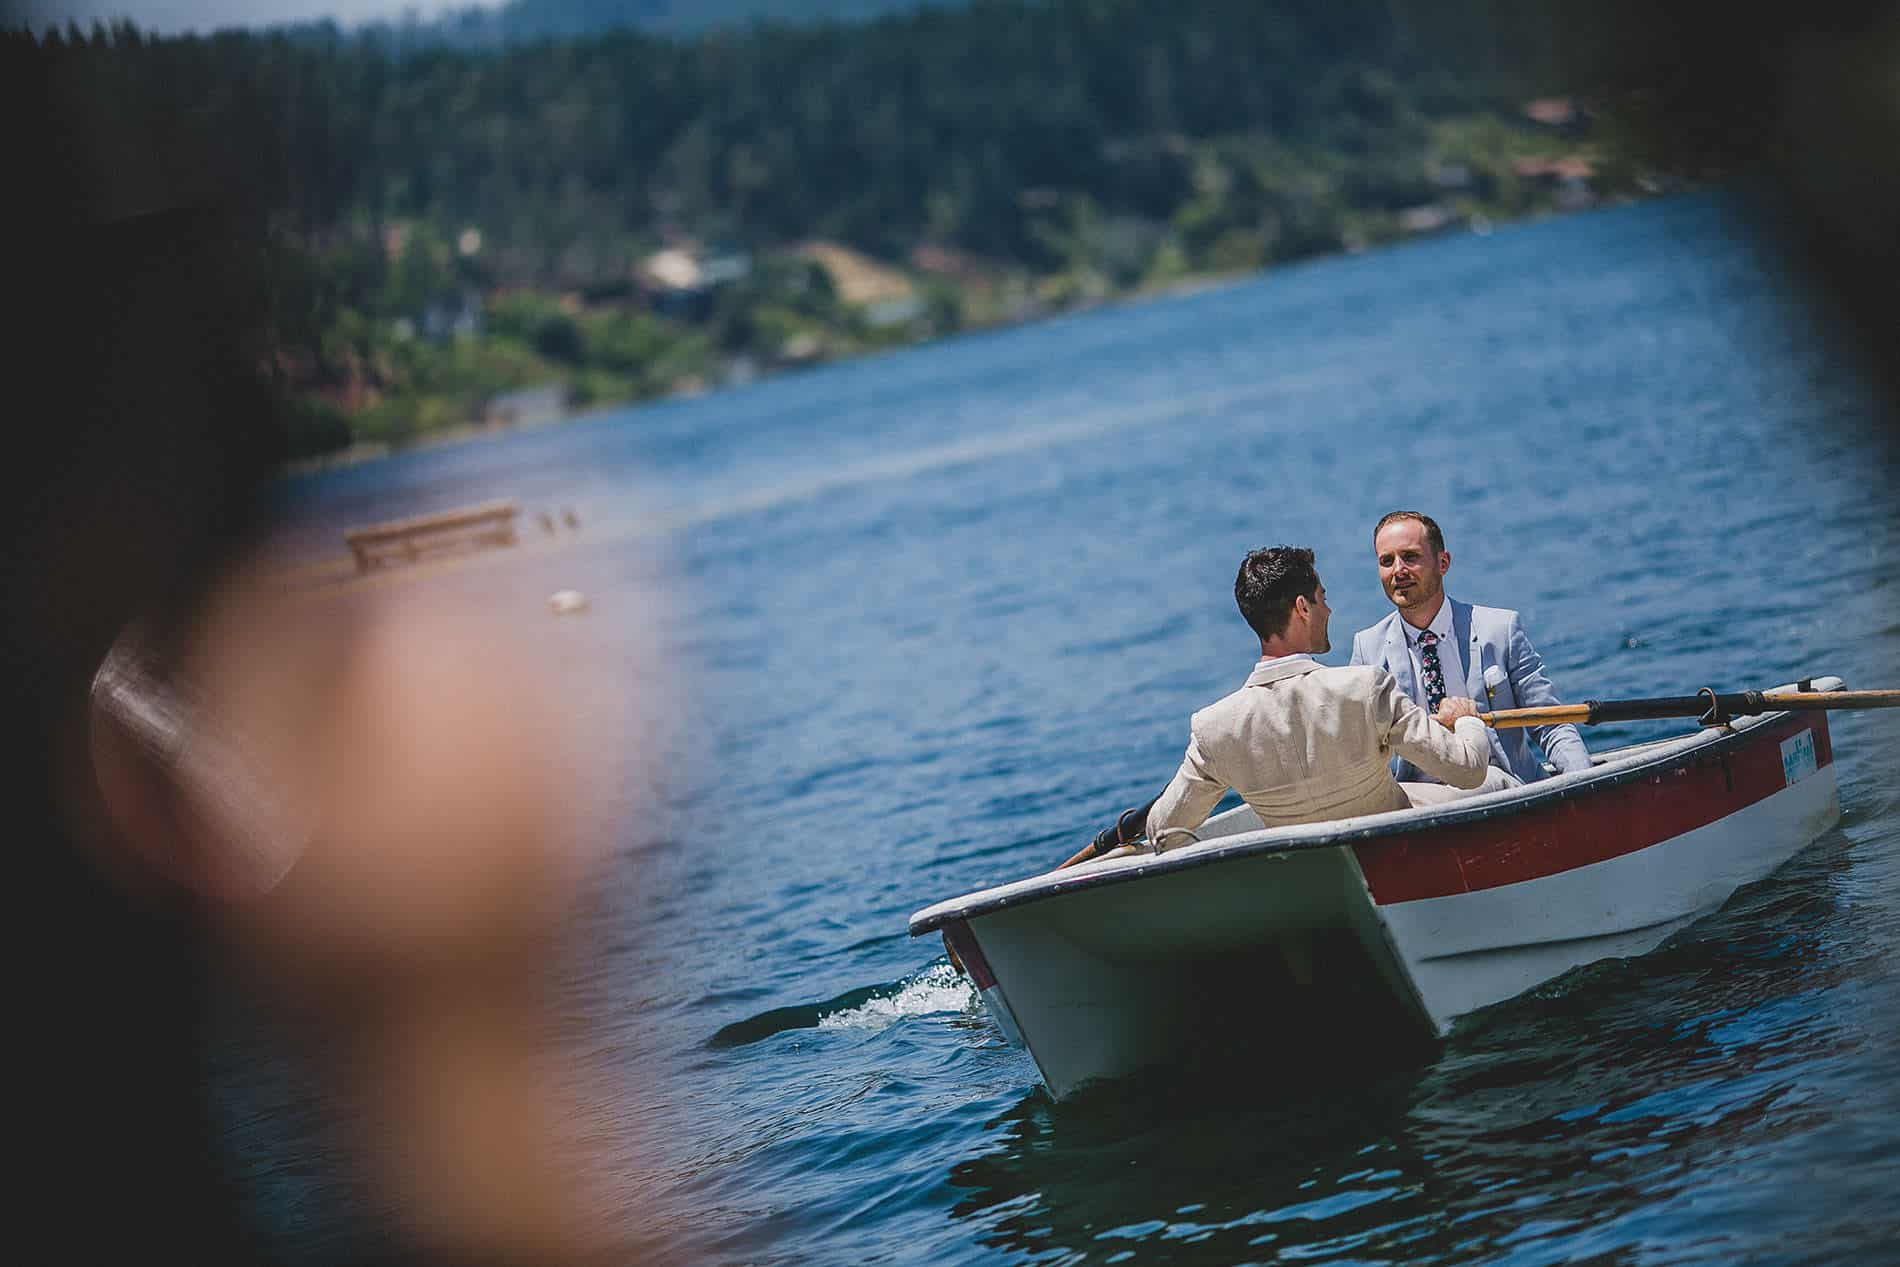 grooms going to the ceremony in a boat